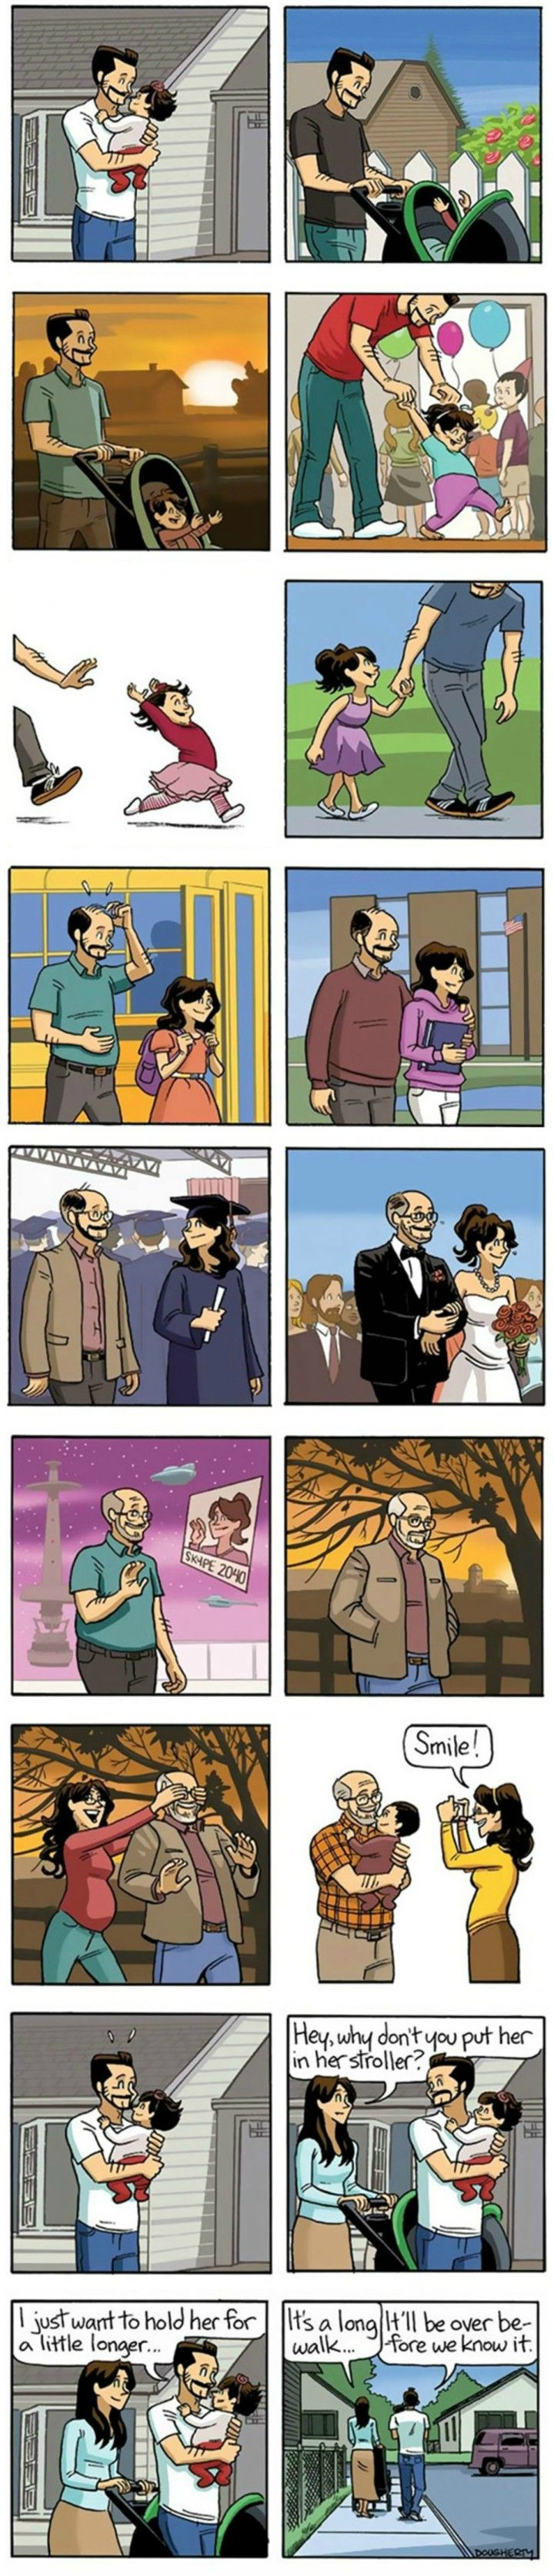 """Dan Dougherty s Beardo ic Strip Entitled """"The End"""" About Growing Old Will Melt Your"""